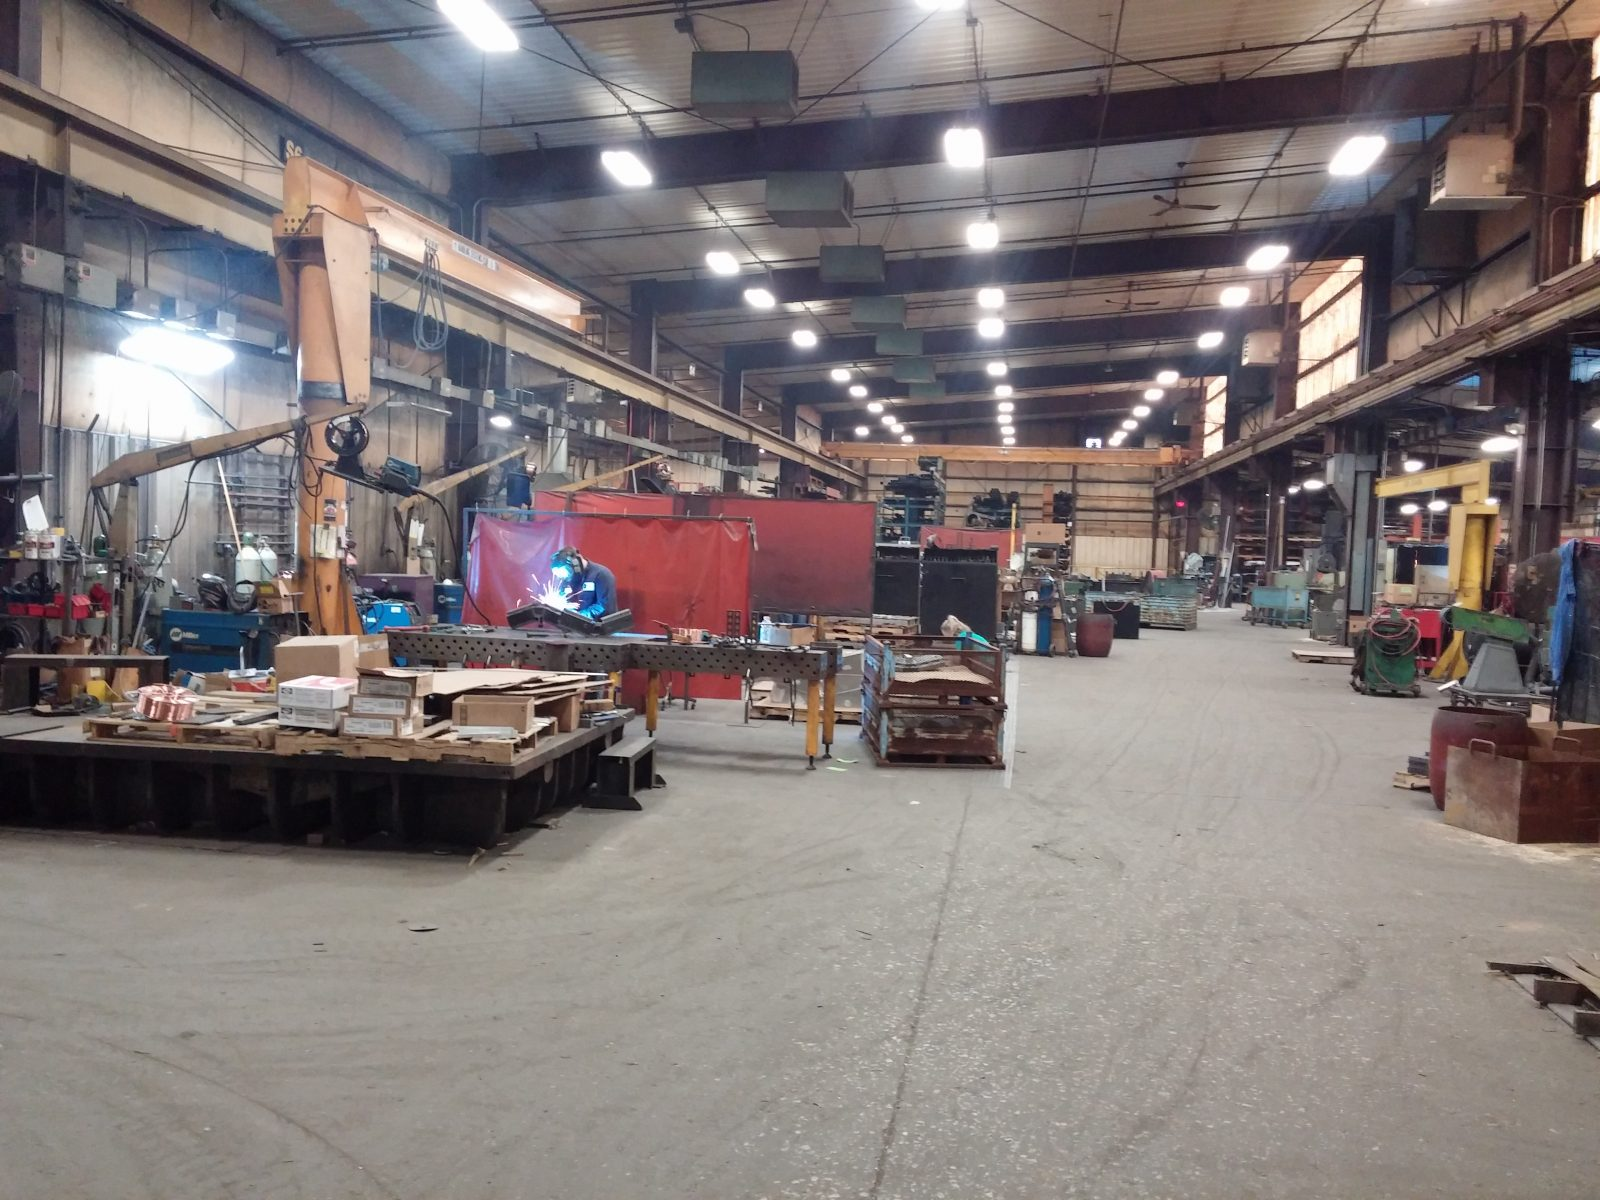 Main fabrication warehouse with worker welding